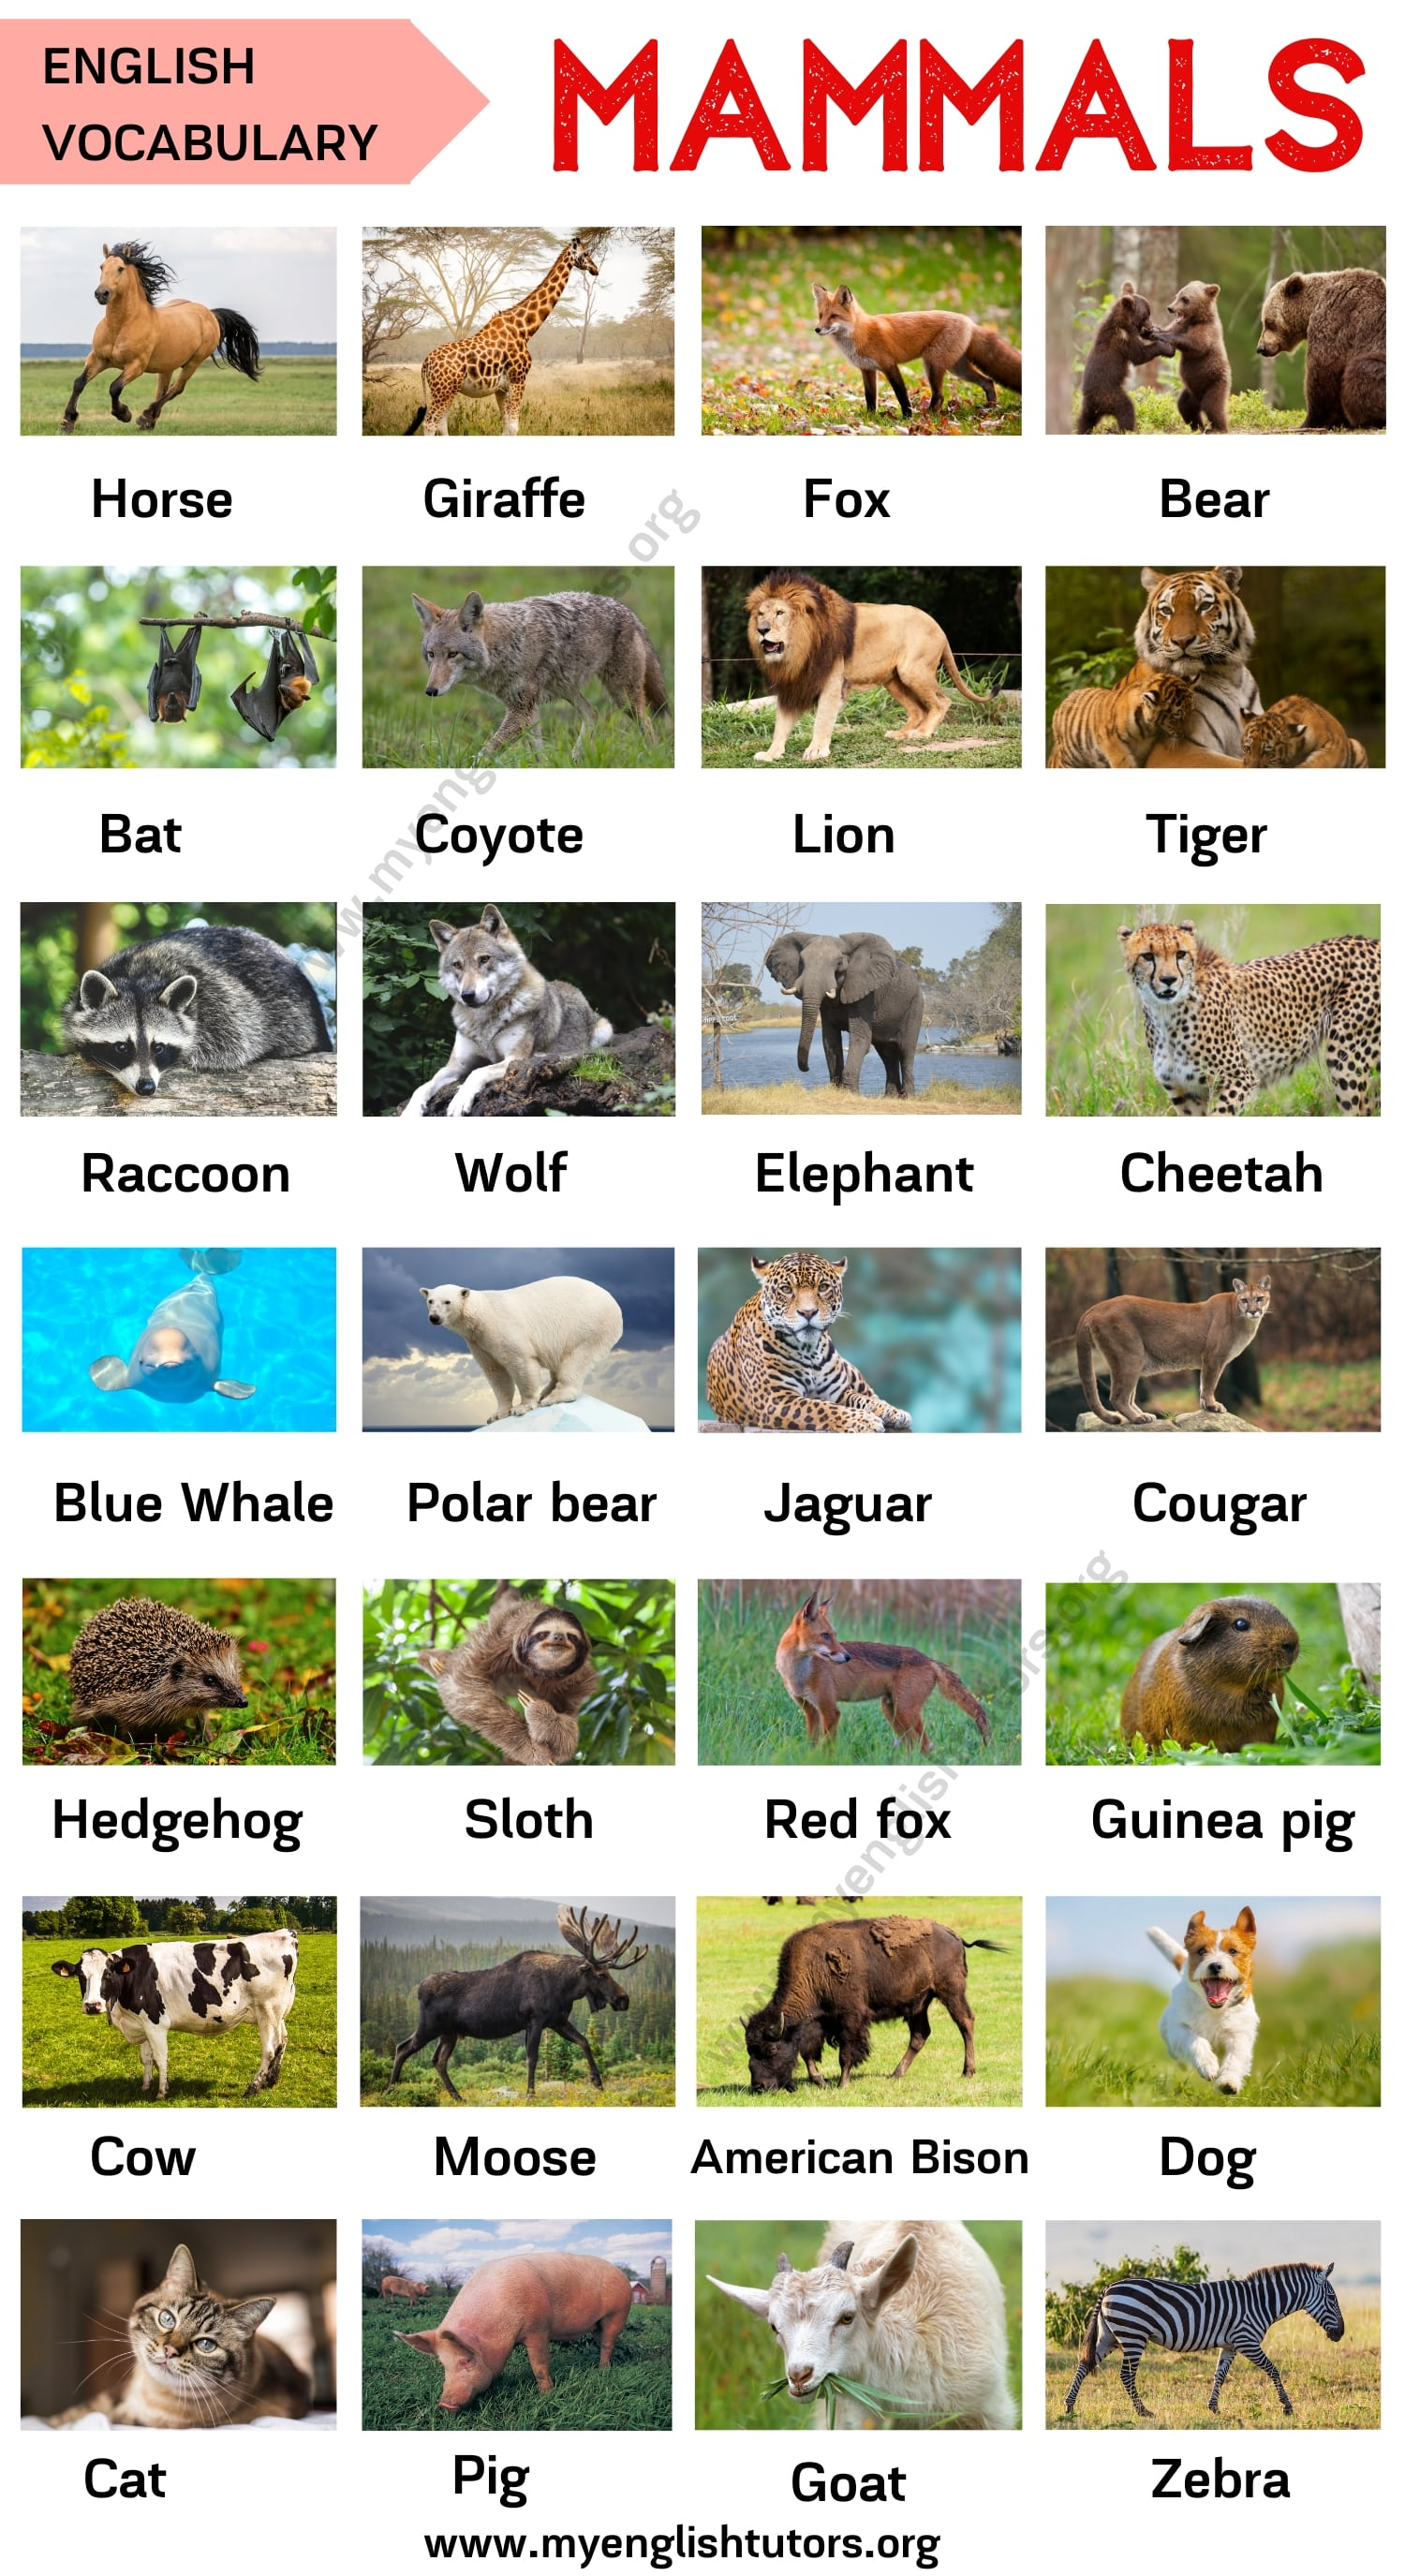 Mammals: List of Mammal Names in English with ESL Picture!